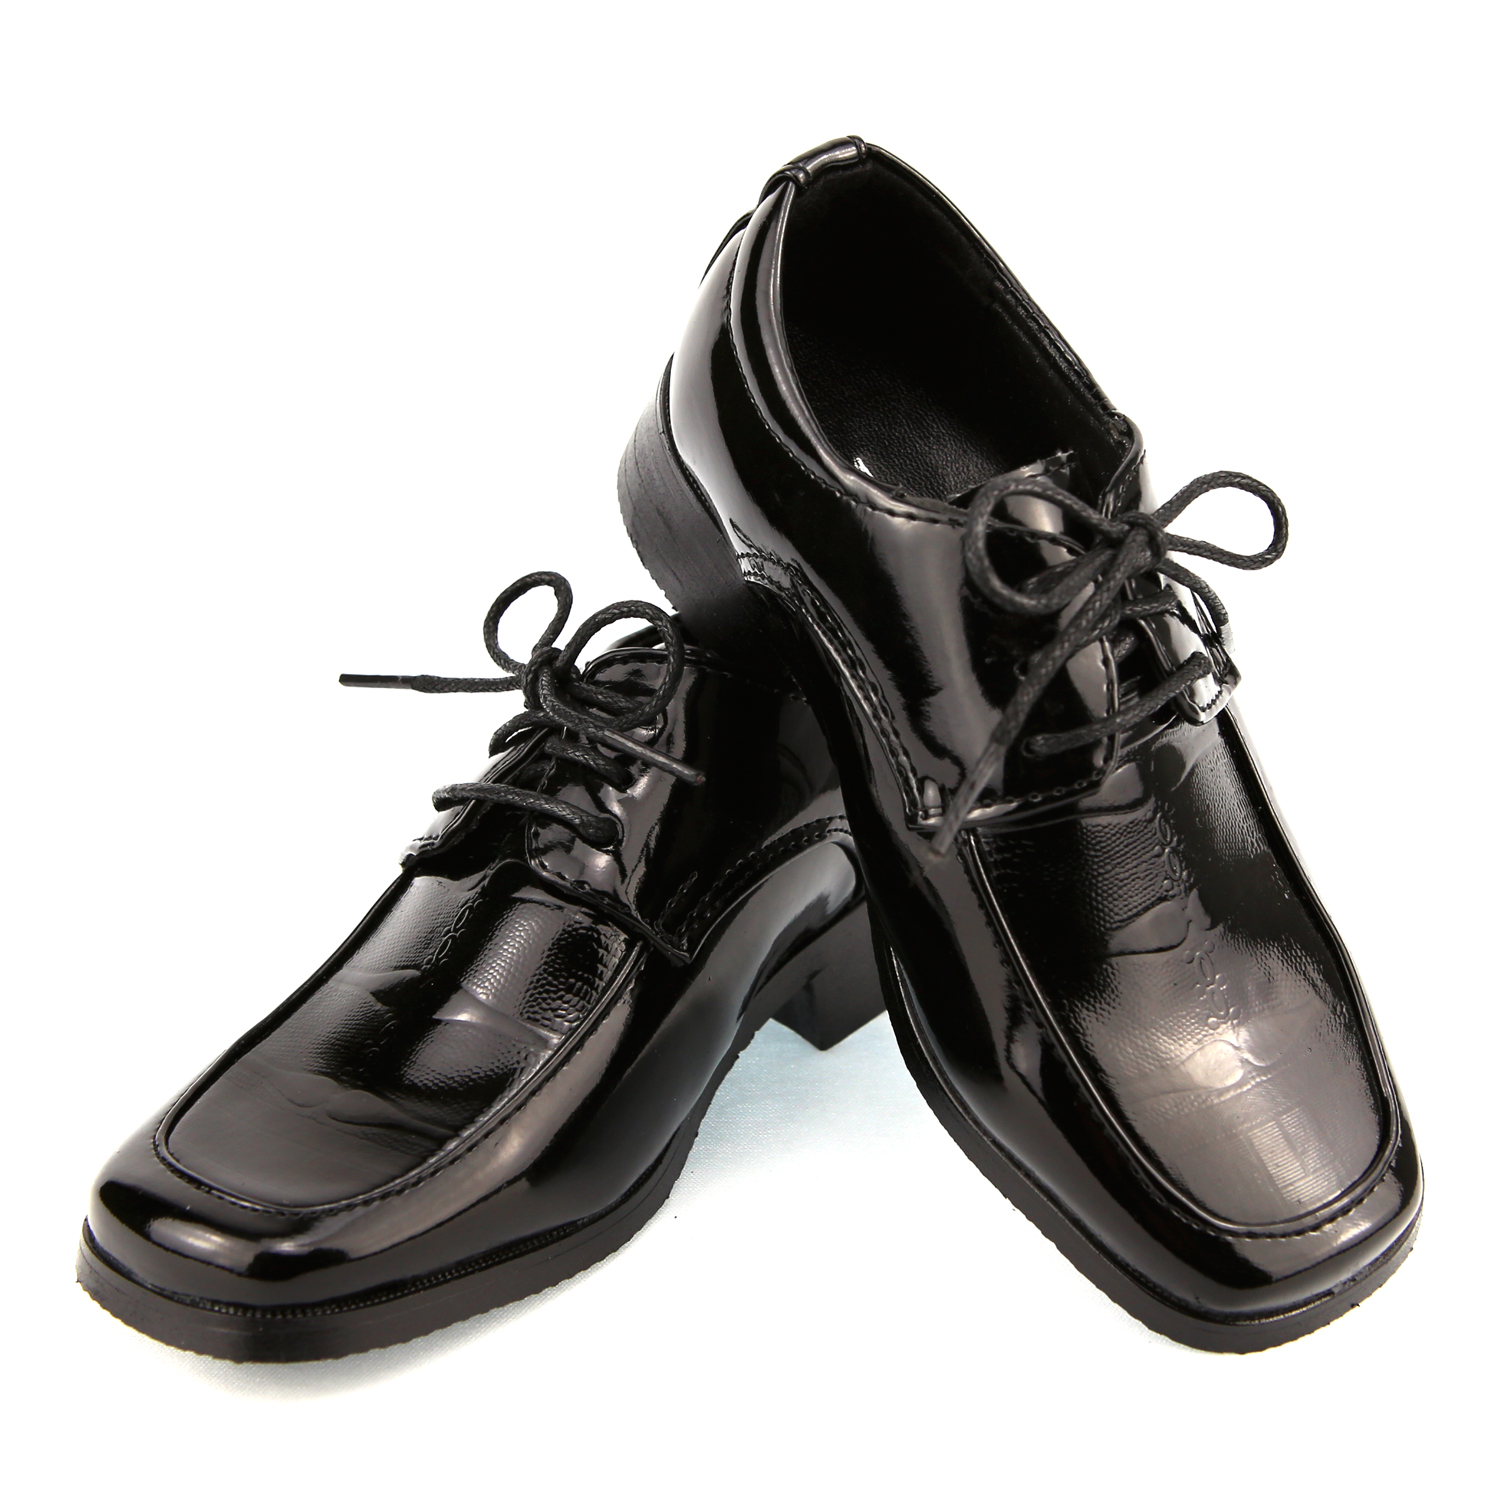 Chaussure pour costume